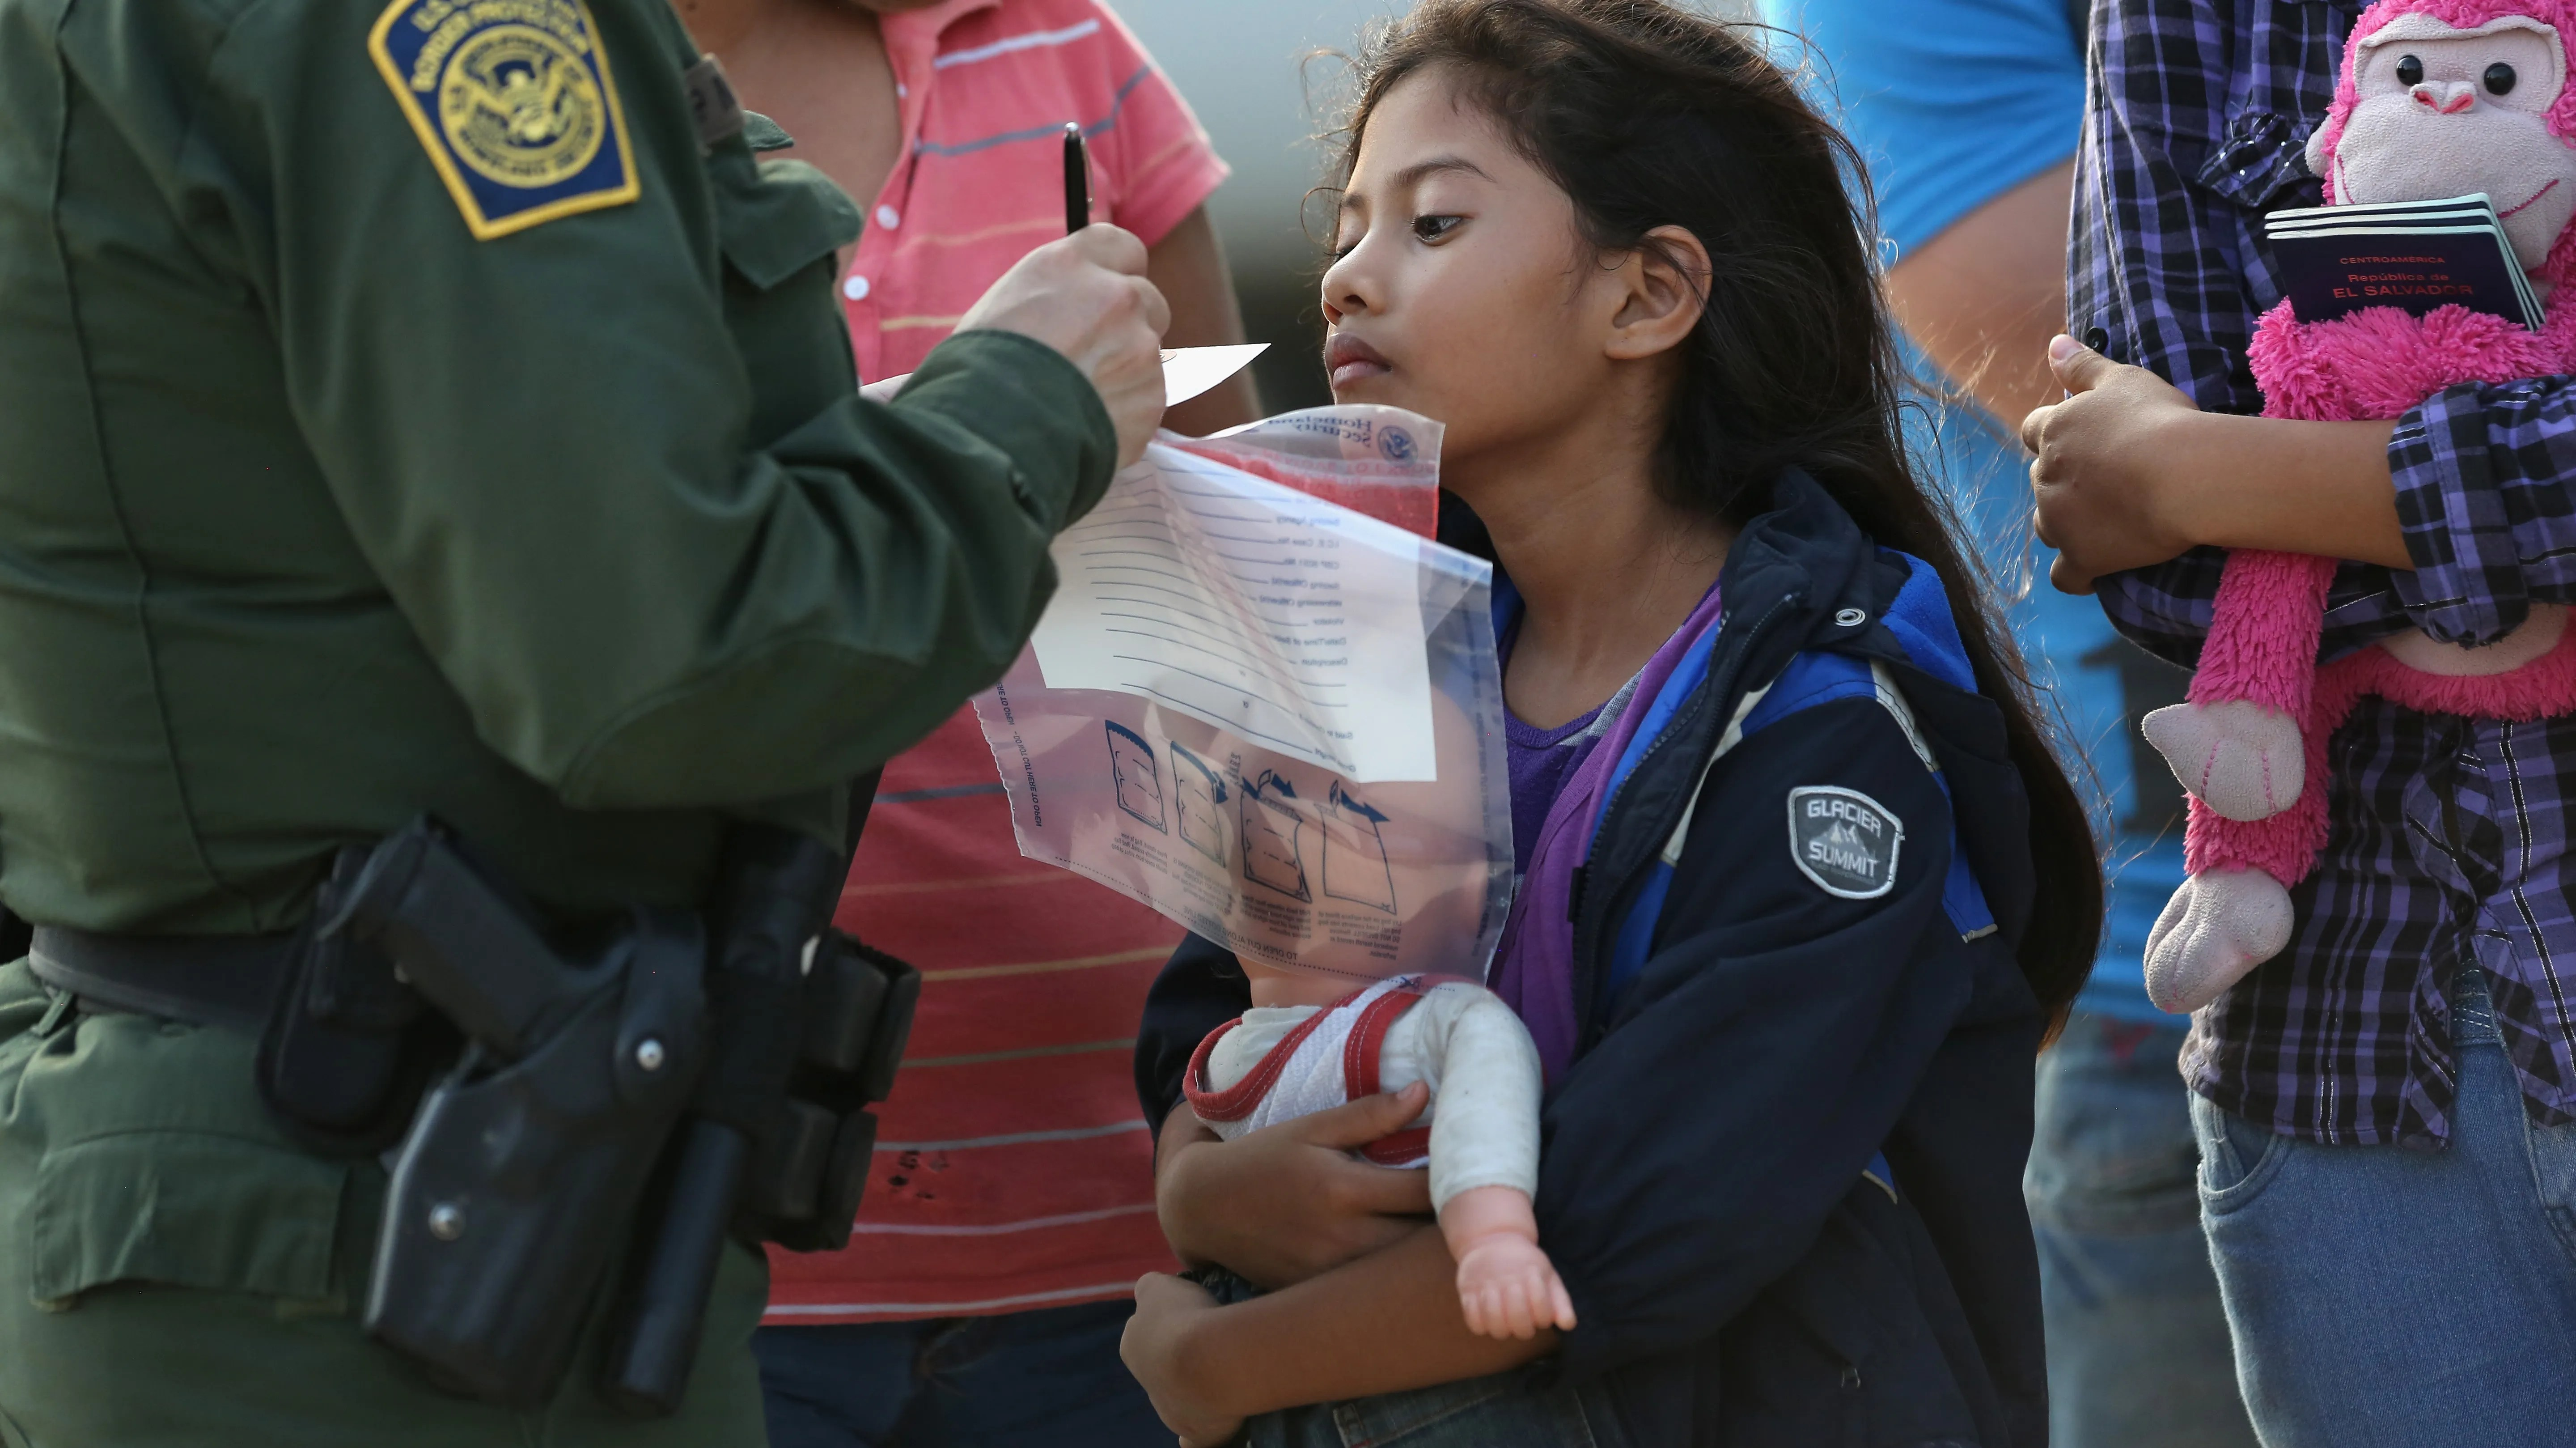 Salvadoran immigrant Stefany Marjorie, 8, watches as a U.S. Border Patrol agent records family information July 24 in Mission, Texas. Tens of thousands of families and unaccompanied minors from Central America have crossed illegally into the USA this year.